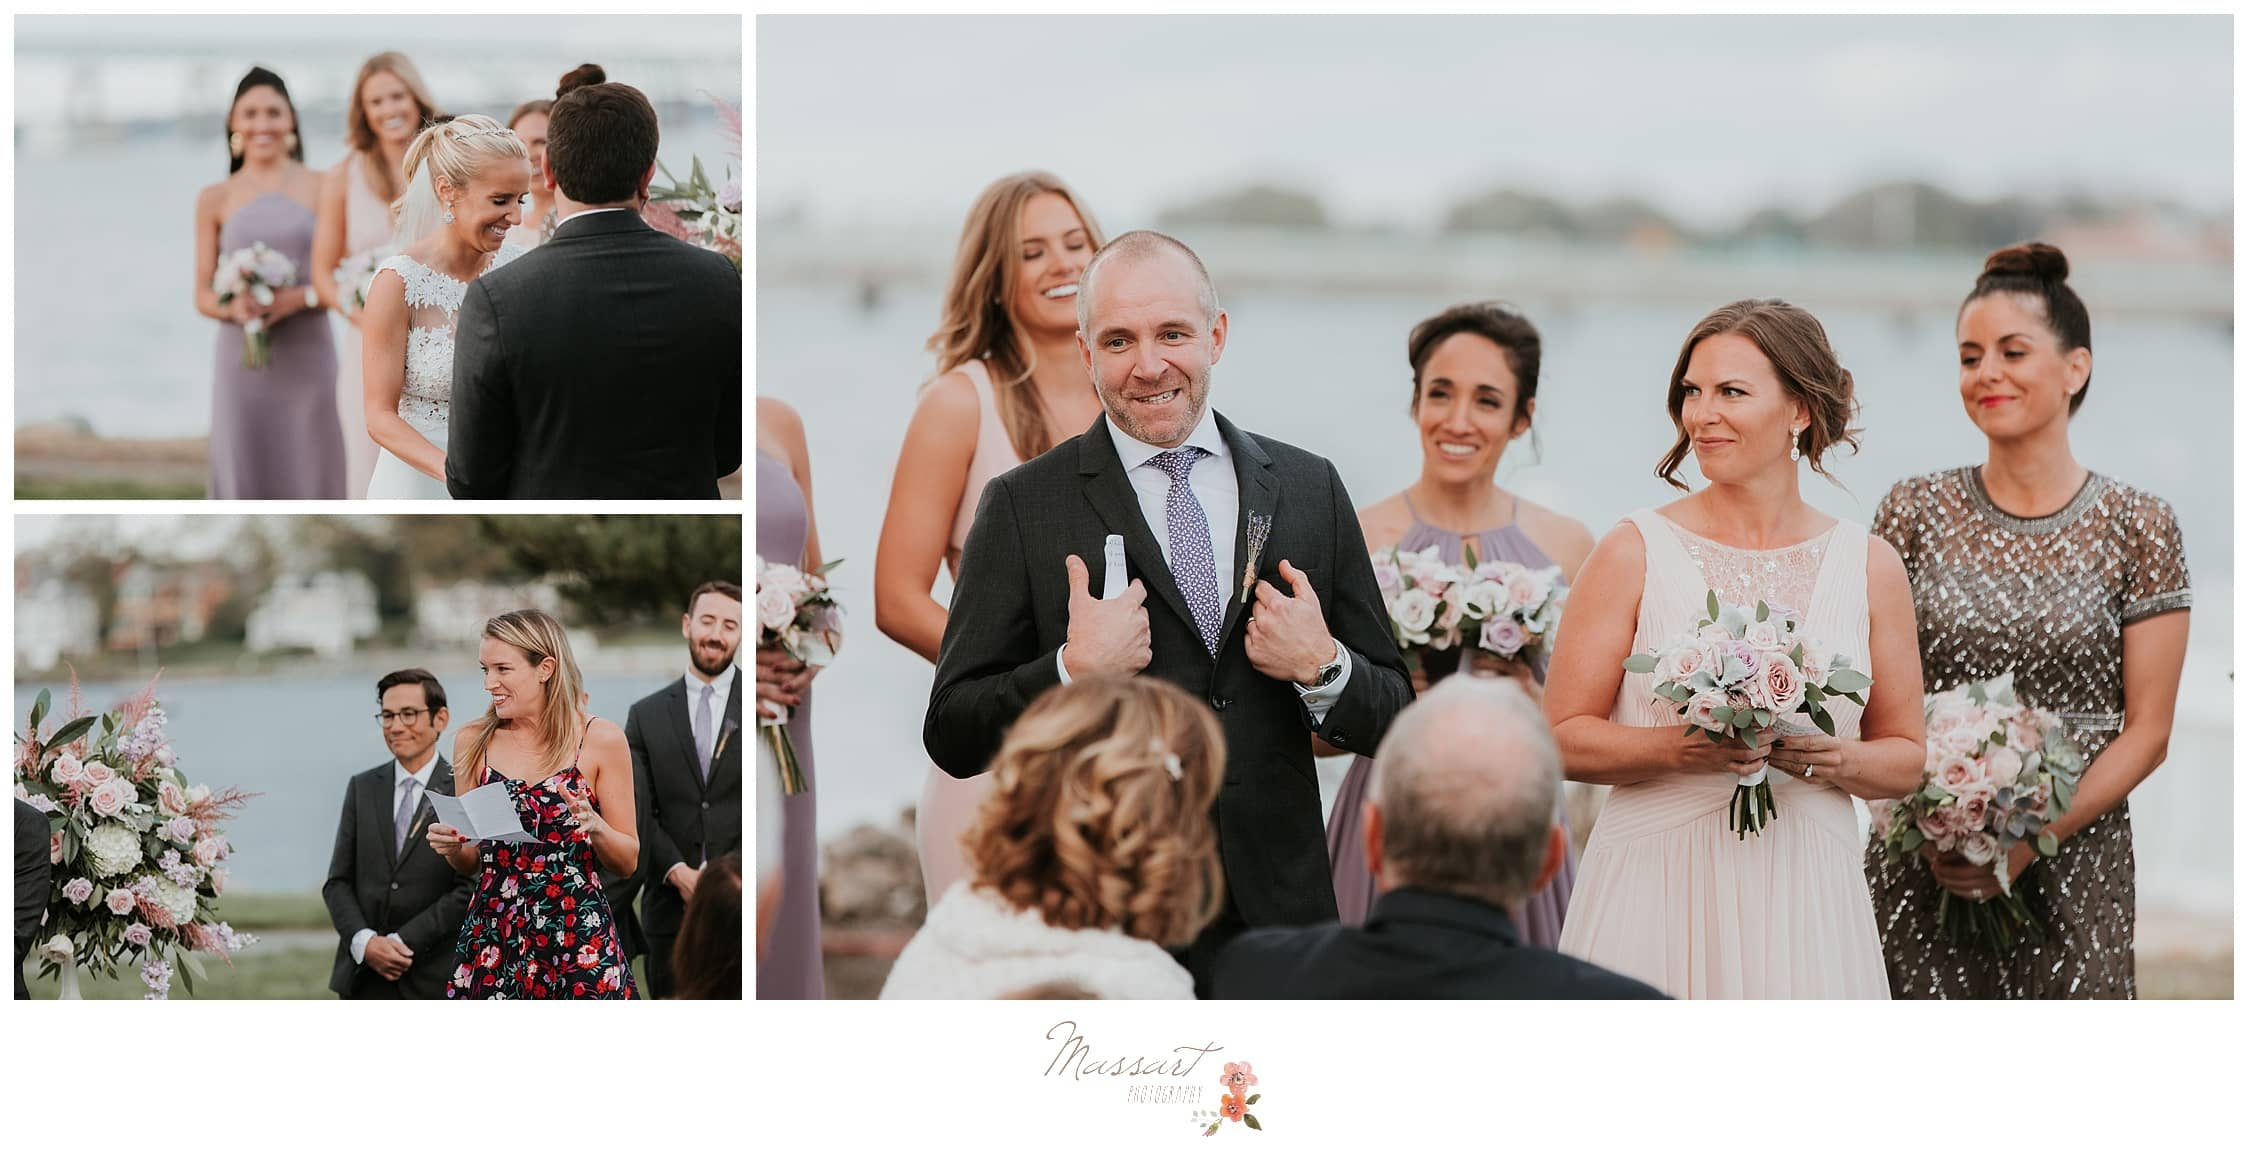 Family giving speeches at the wedding ceremony photographed by Massart Photography Rhode Island